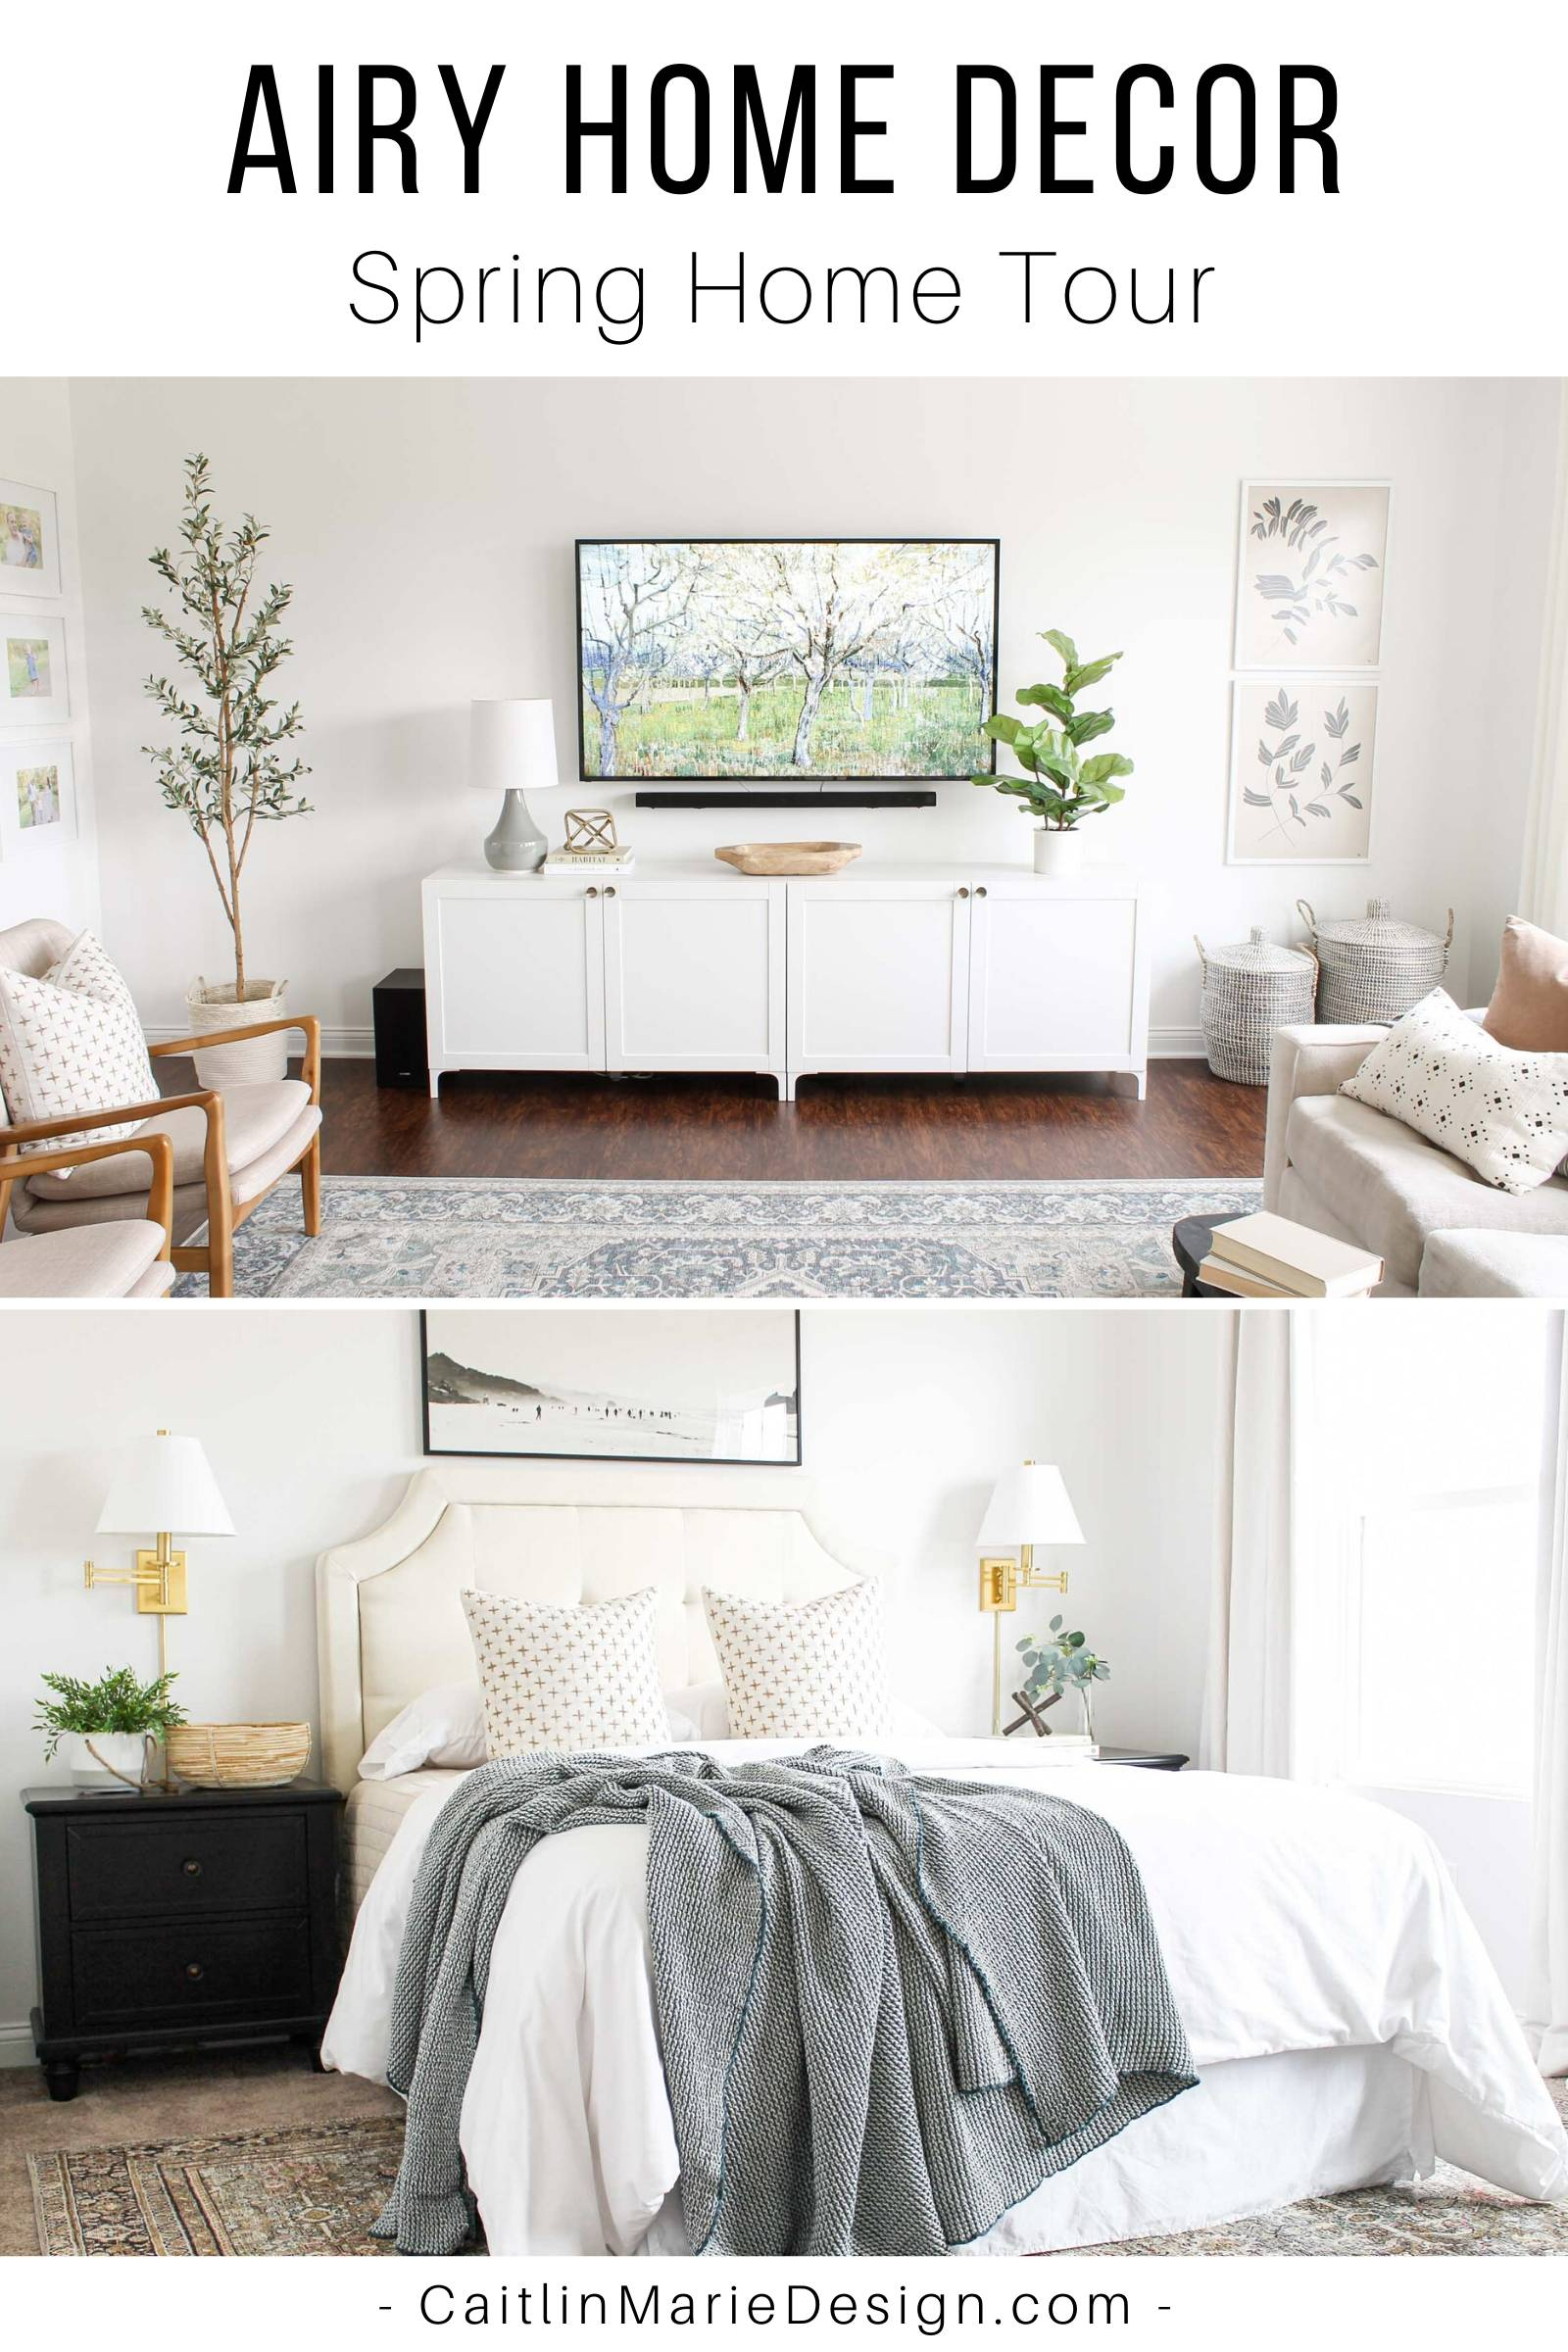 Airy Home Decor | Spring Home Tour | coastal decor, frame tv hack, modern media console, IKEA besta, modern traditional, lidded baskets